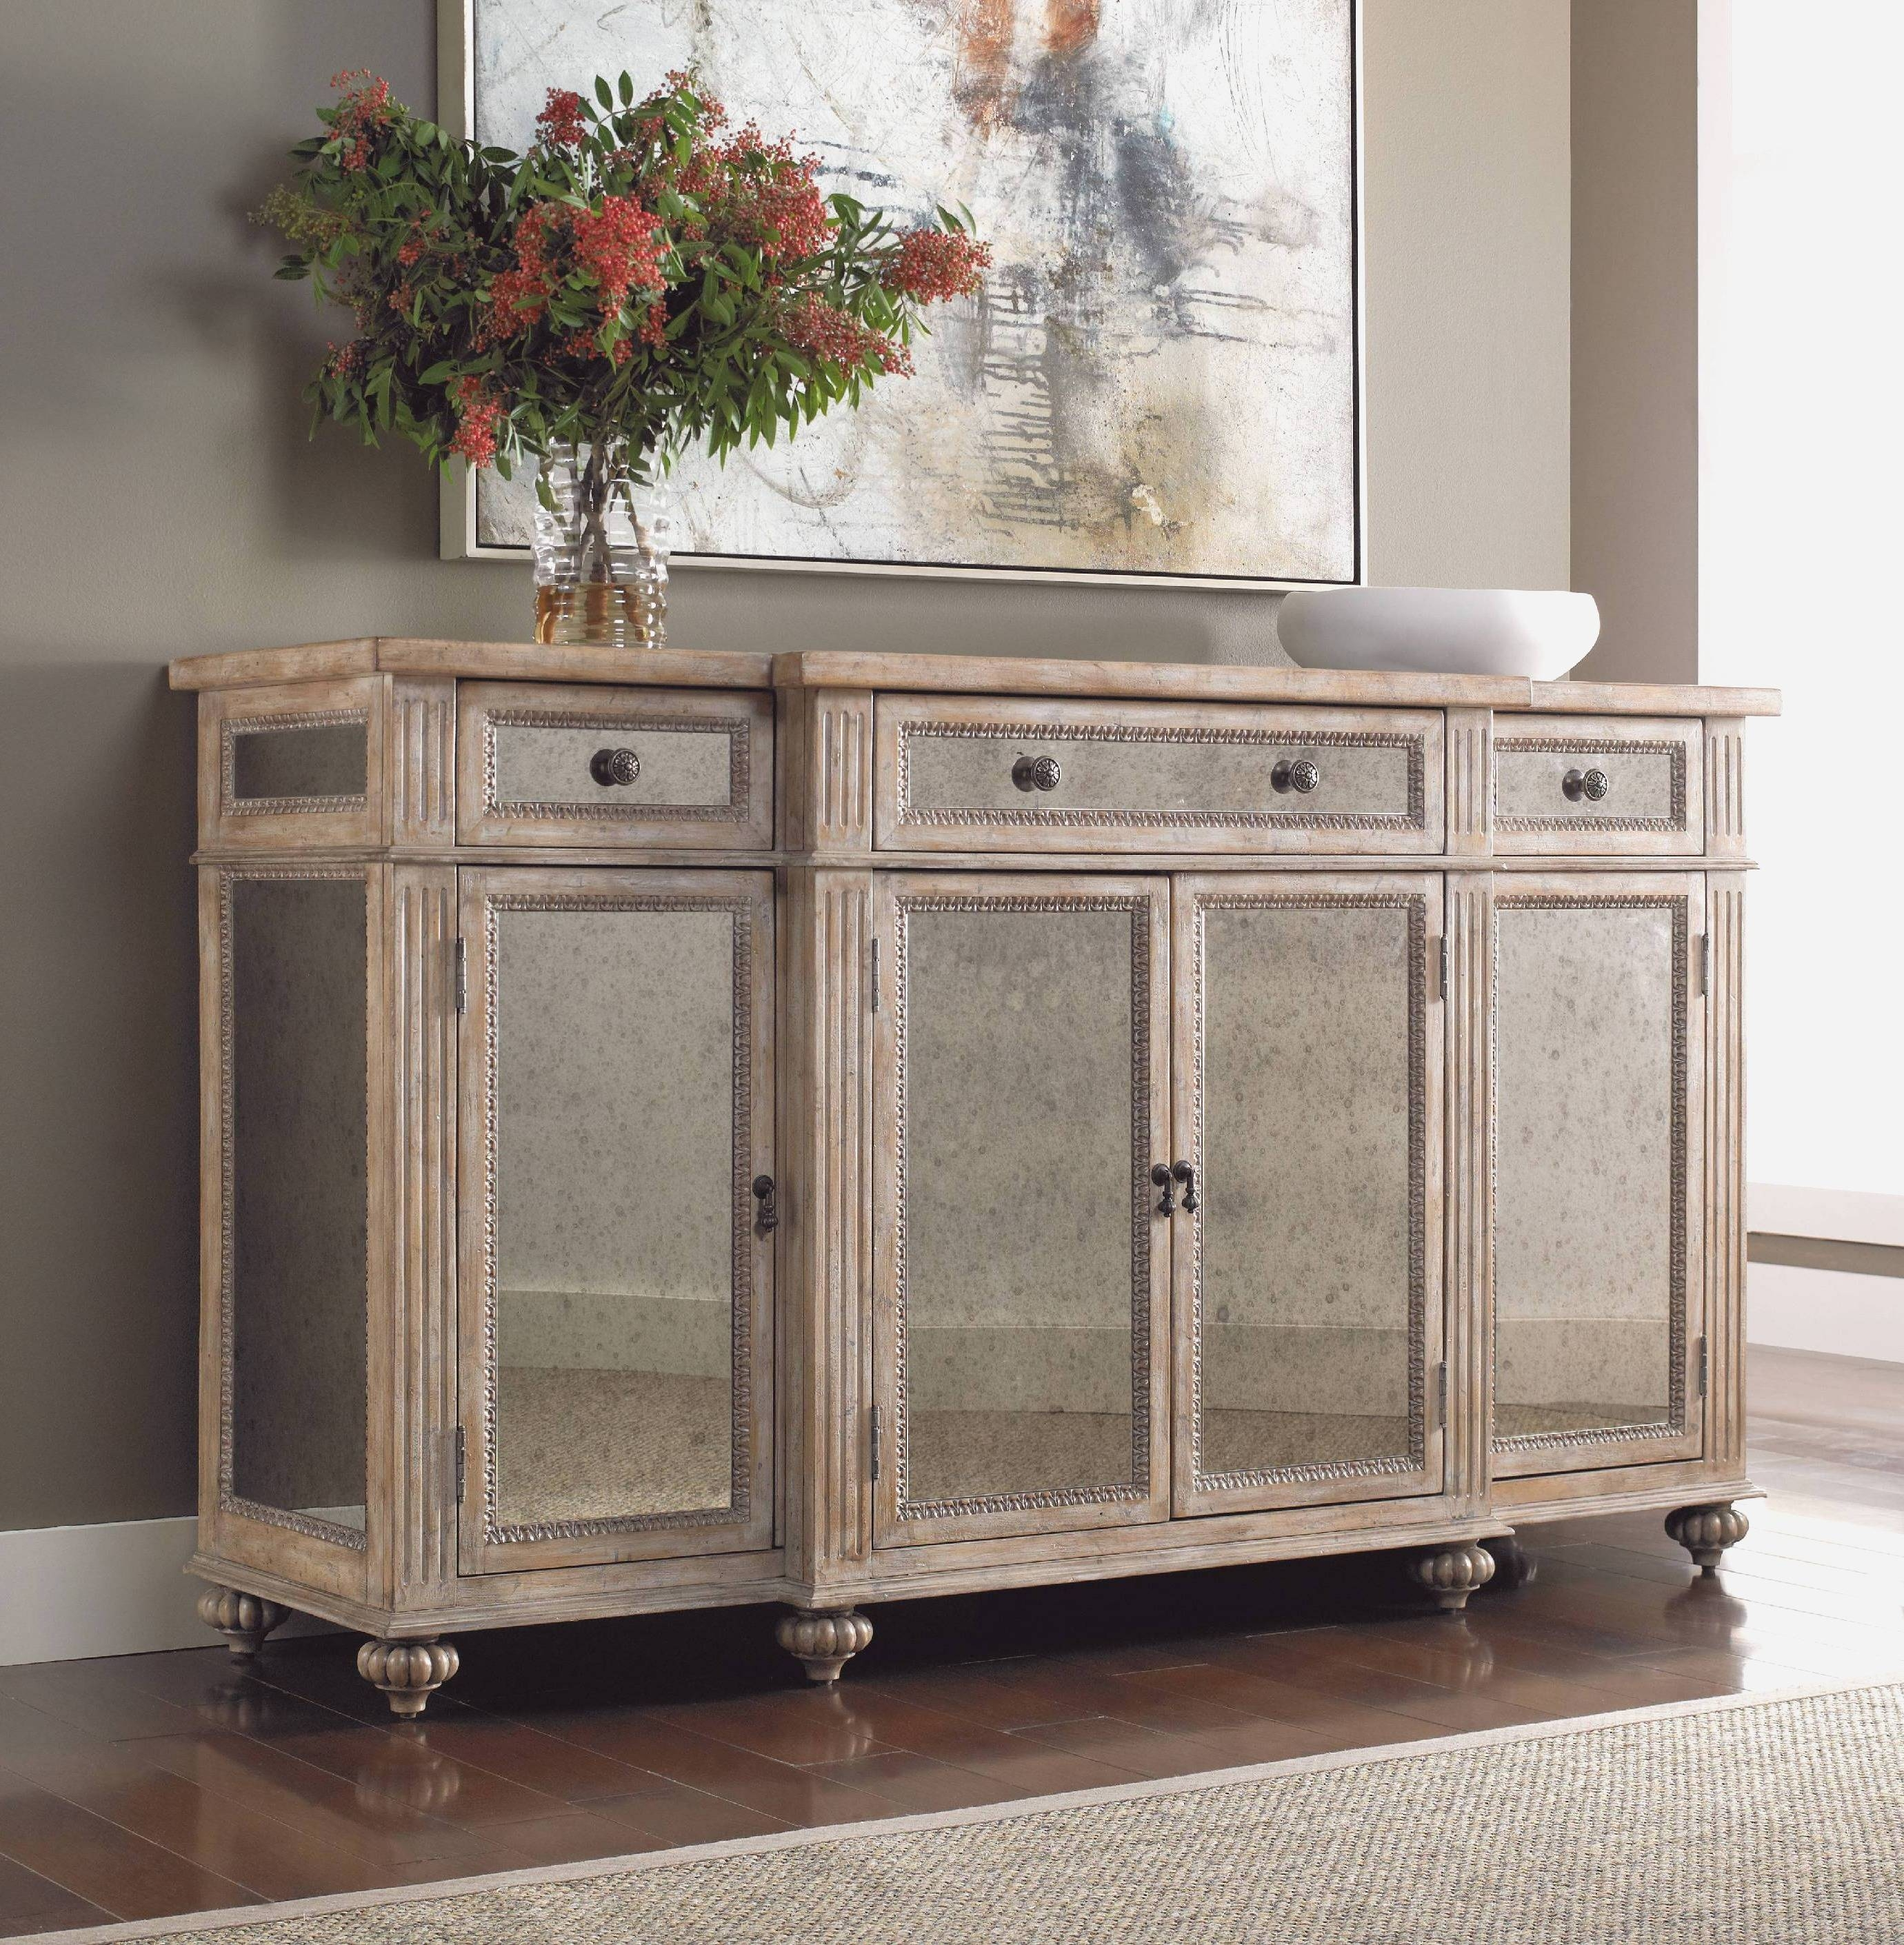 Cheap Sideboards And Buffets: Cheap Sideboards And Buffets Best Inside Elegant Sideboards (#2 of 15)